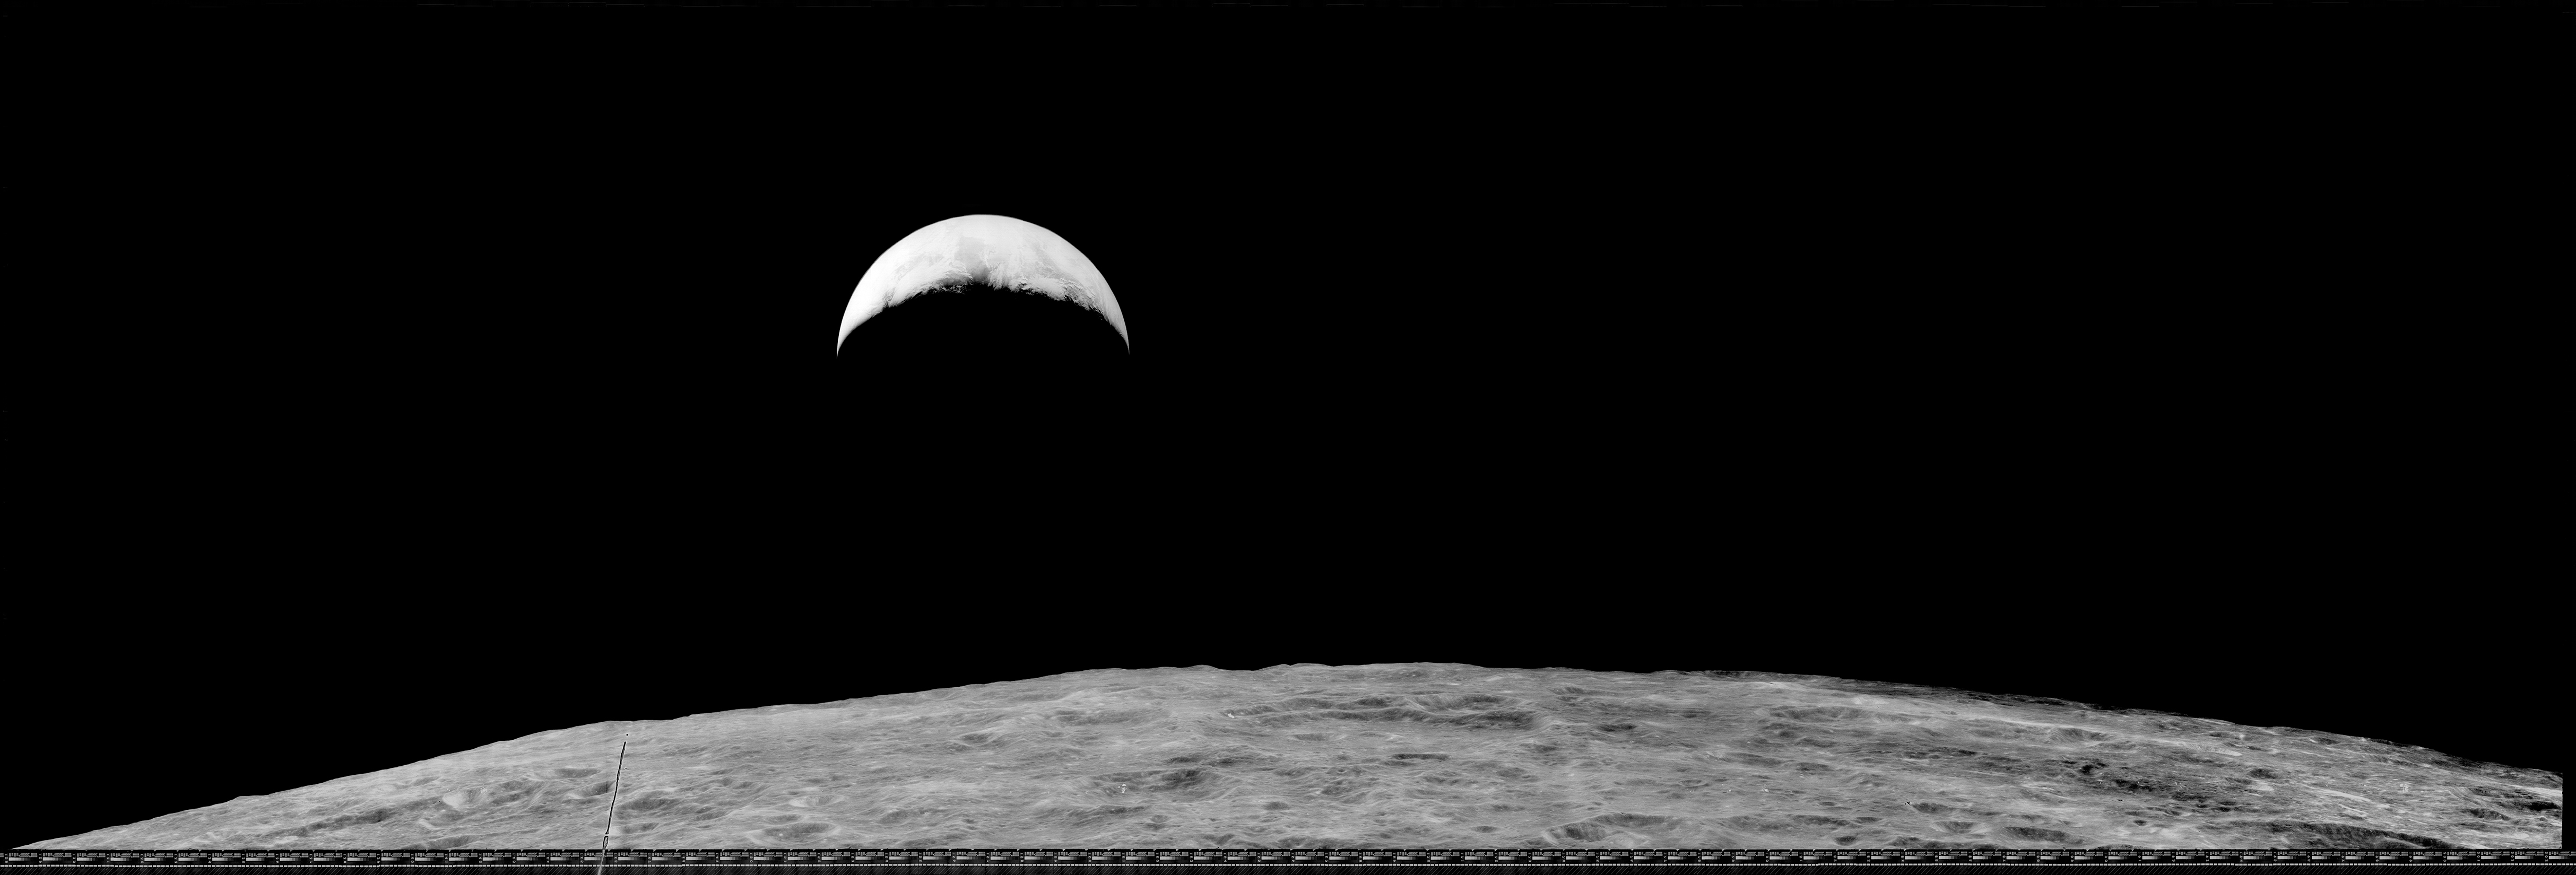 the 'other' lunar orbiter 1 earthrise image - moonviews